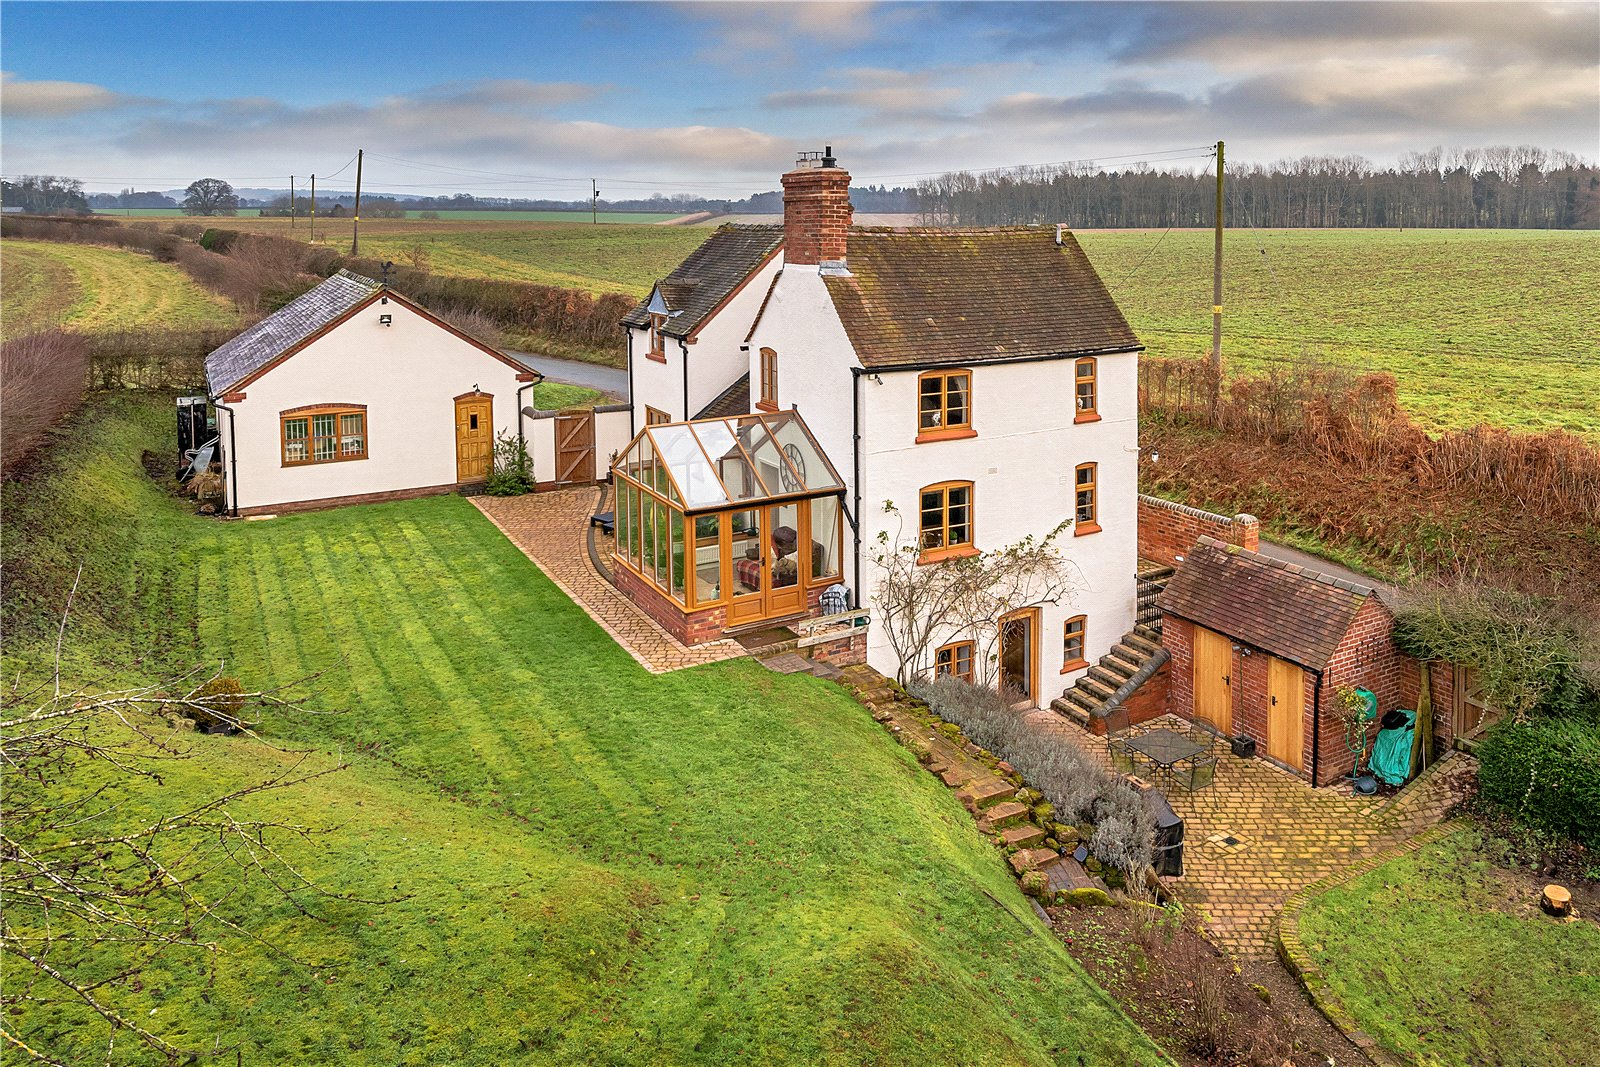 3 Bedrooms Detached House for sale in Lavender Cottage, Hinnington, Shifnal, Shropshire, TF11